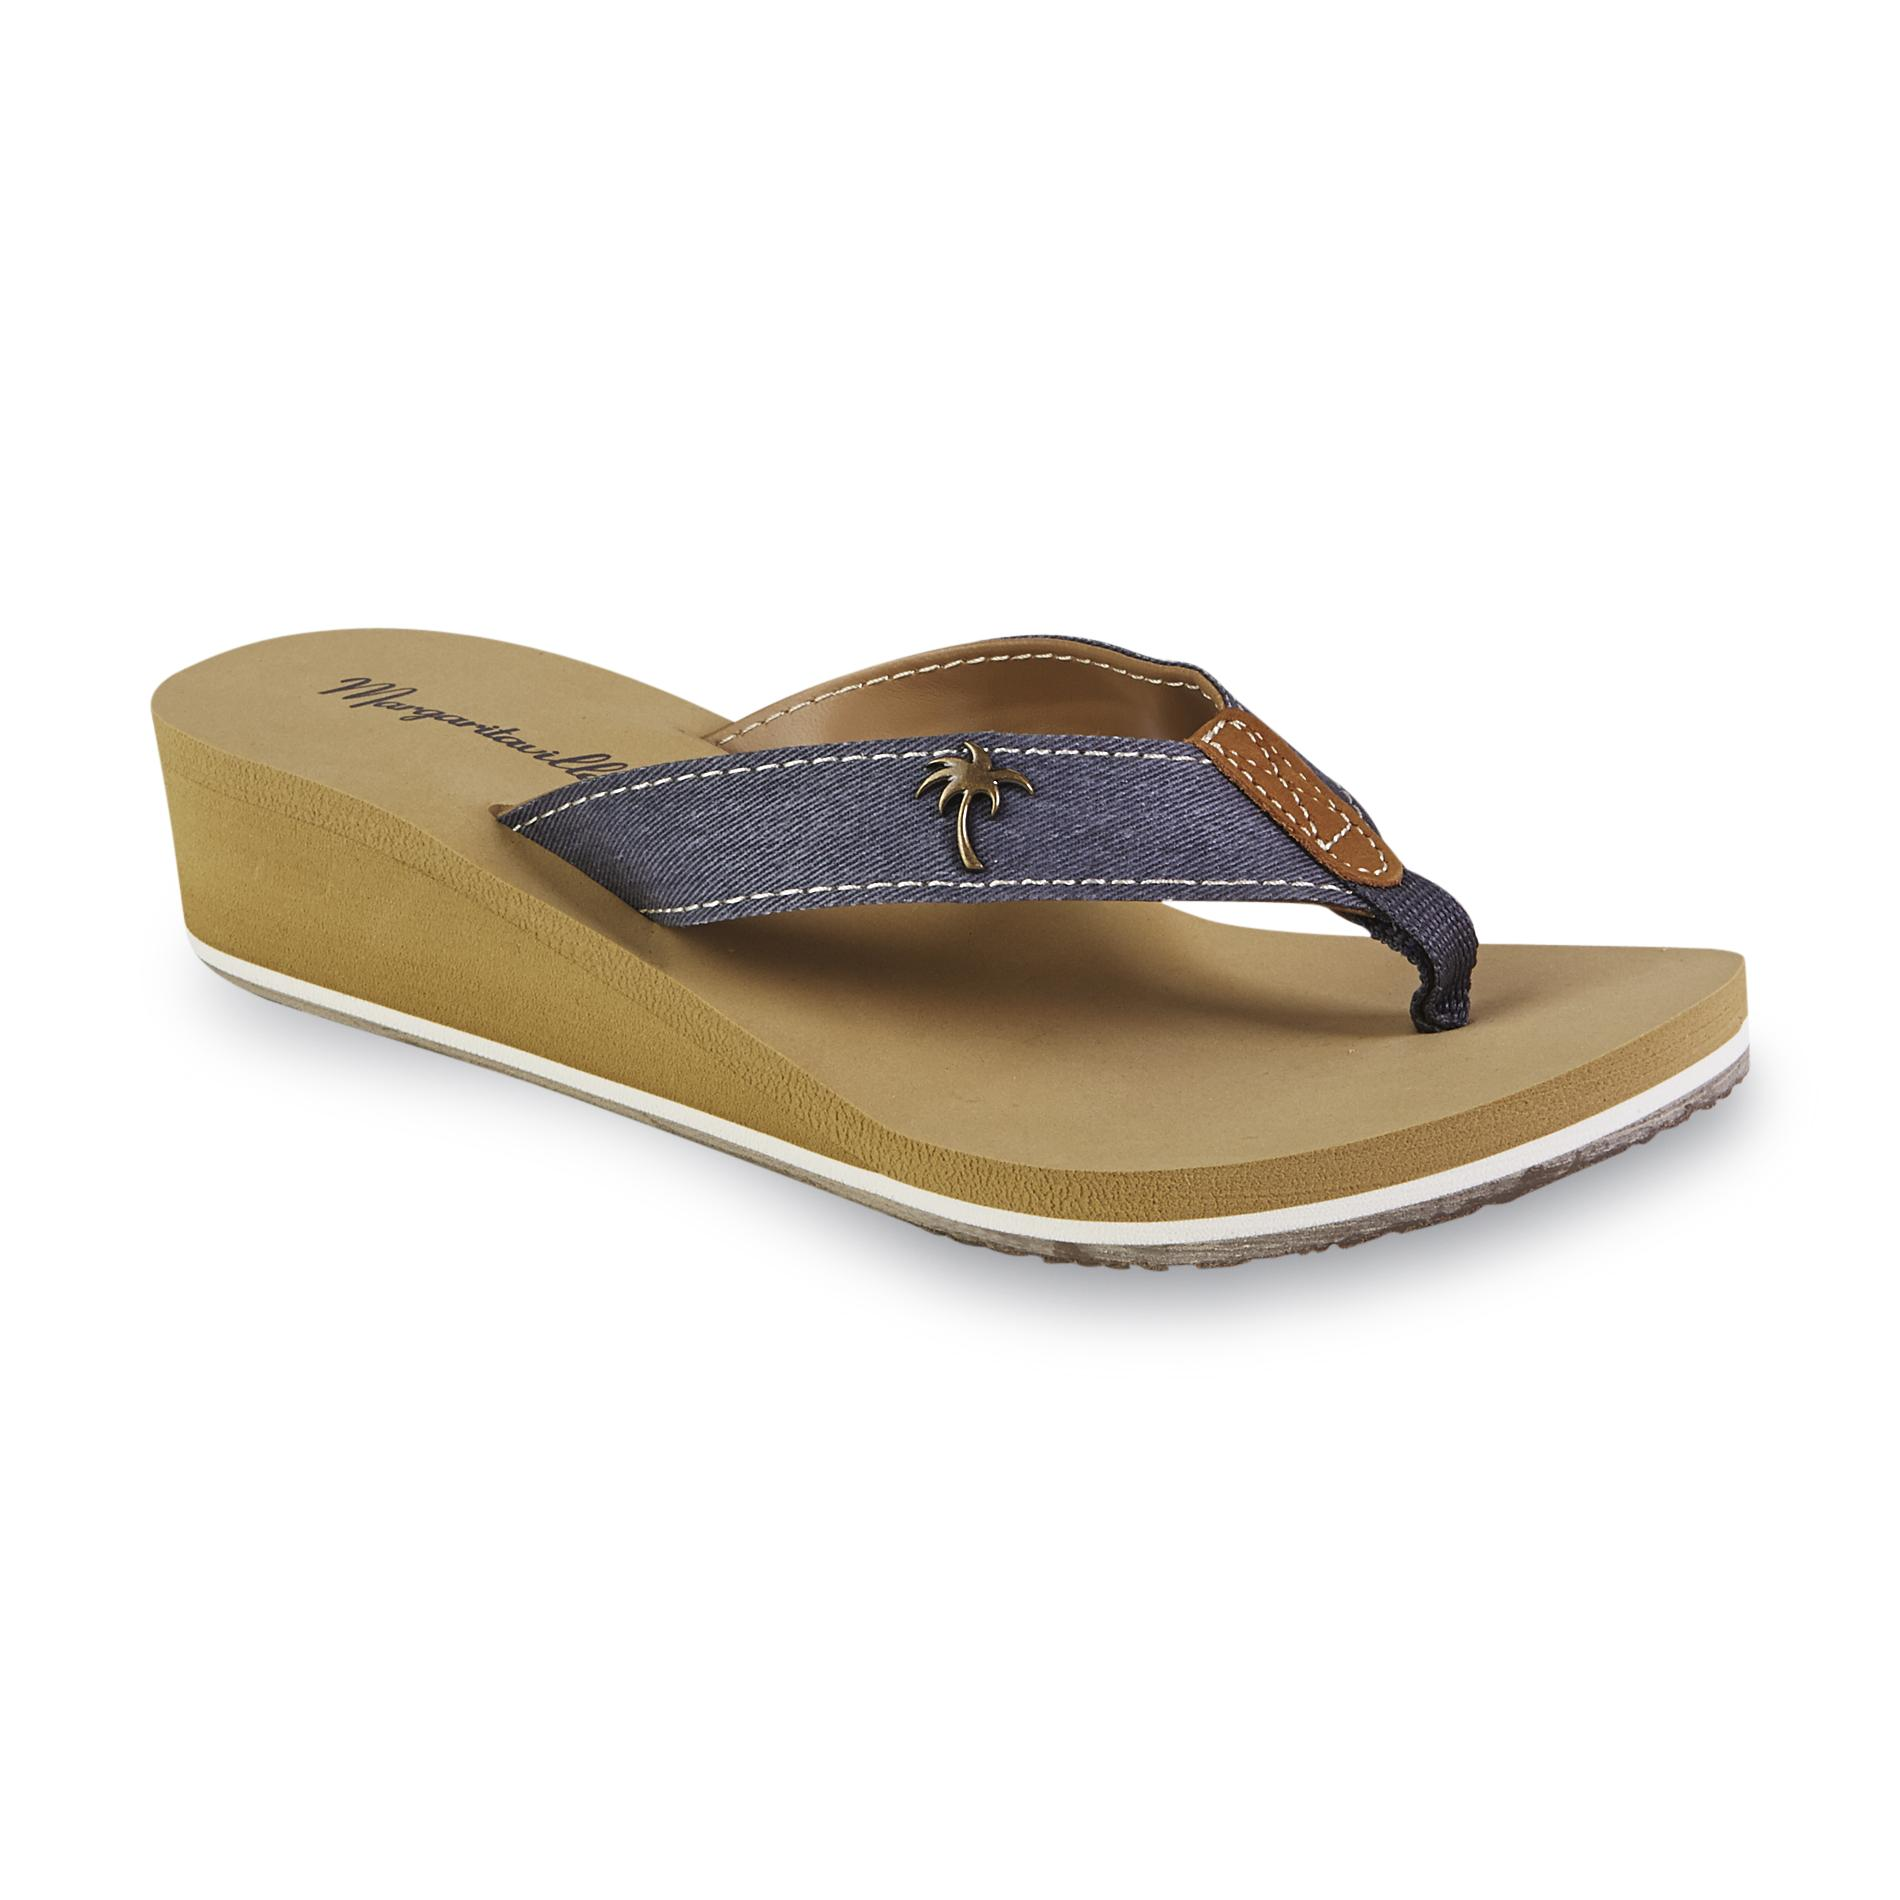 Margaritaville Women's Bermuda Navy Wedge Flip-Flop